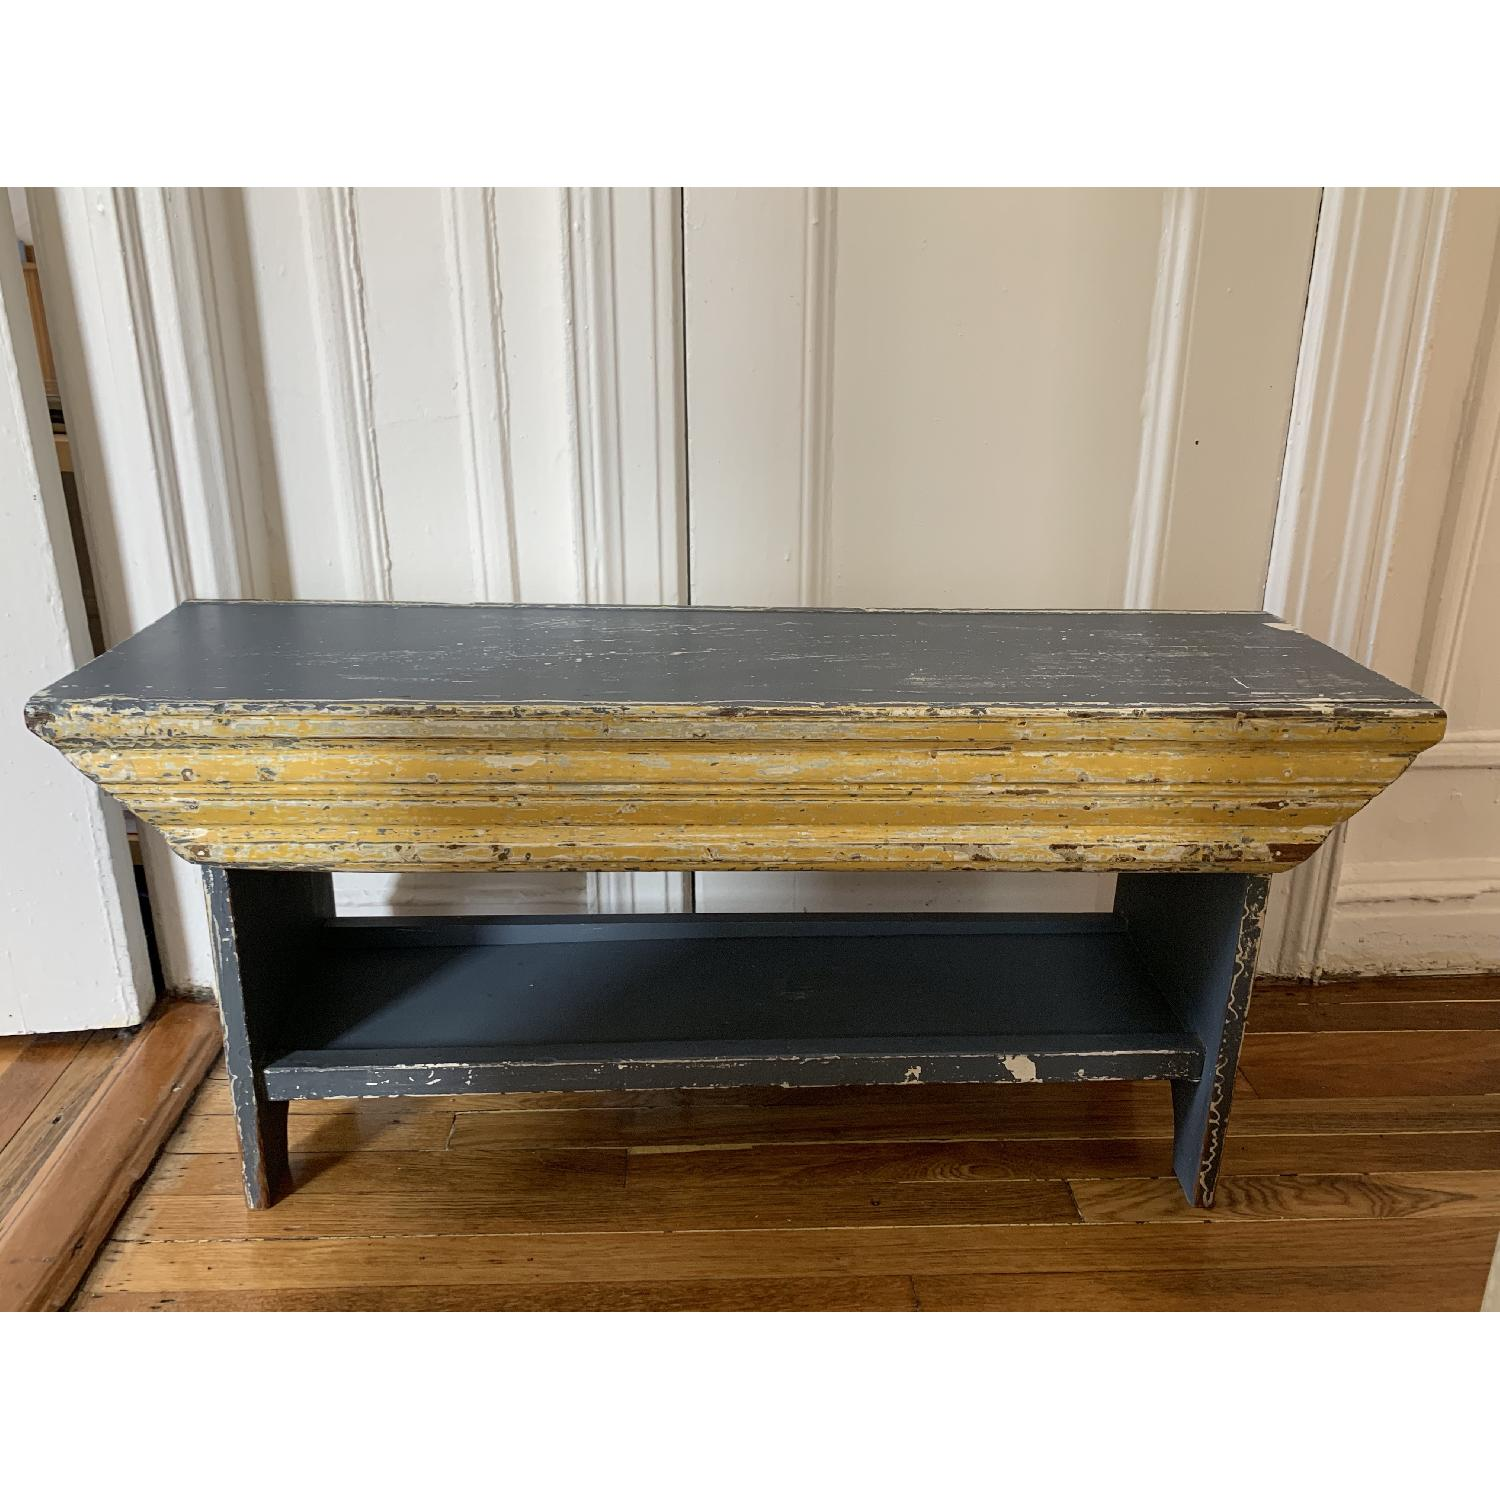 Boho Chic Antiqued Wood Trestle Coffee Table/Bench